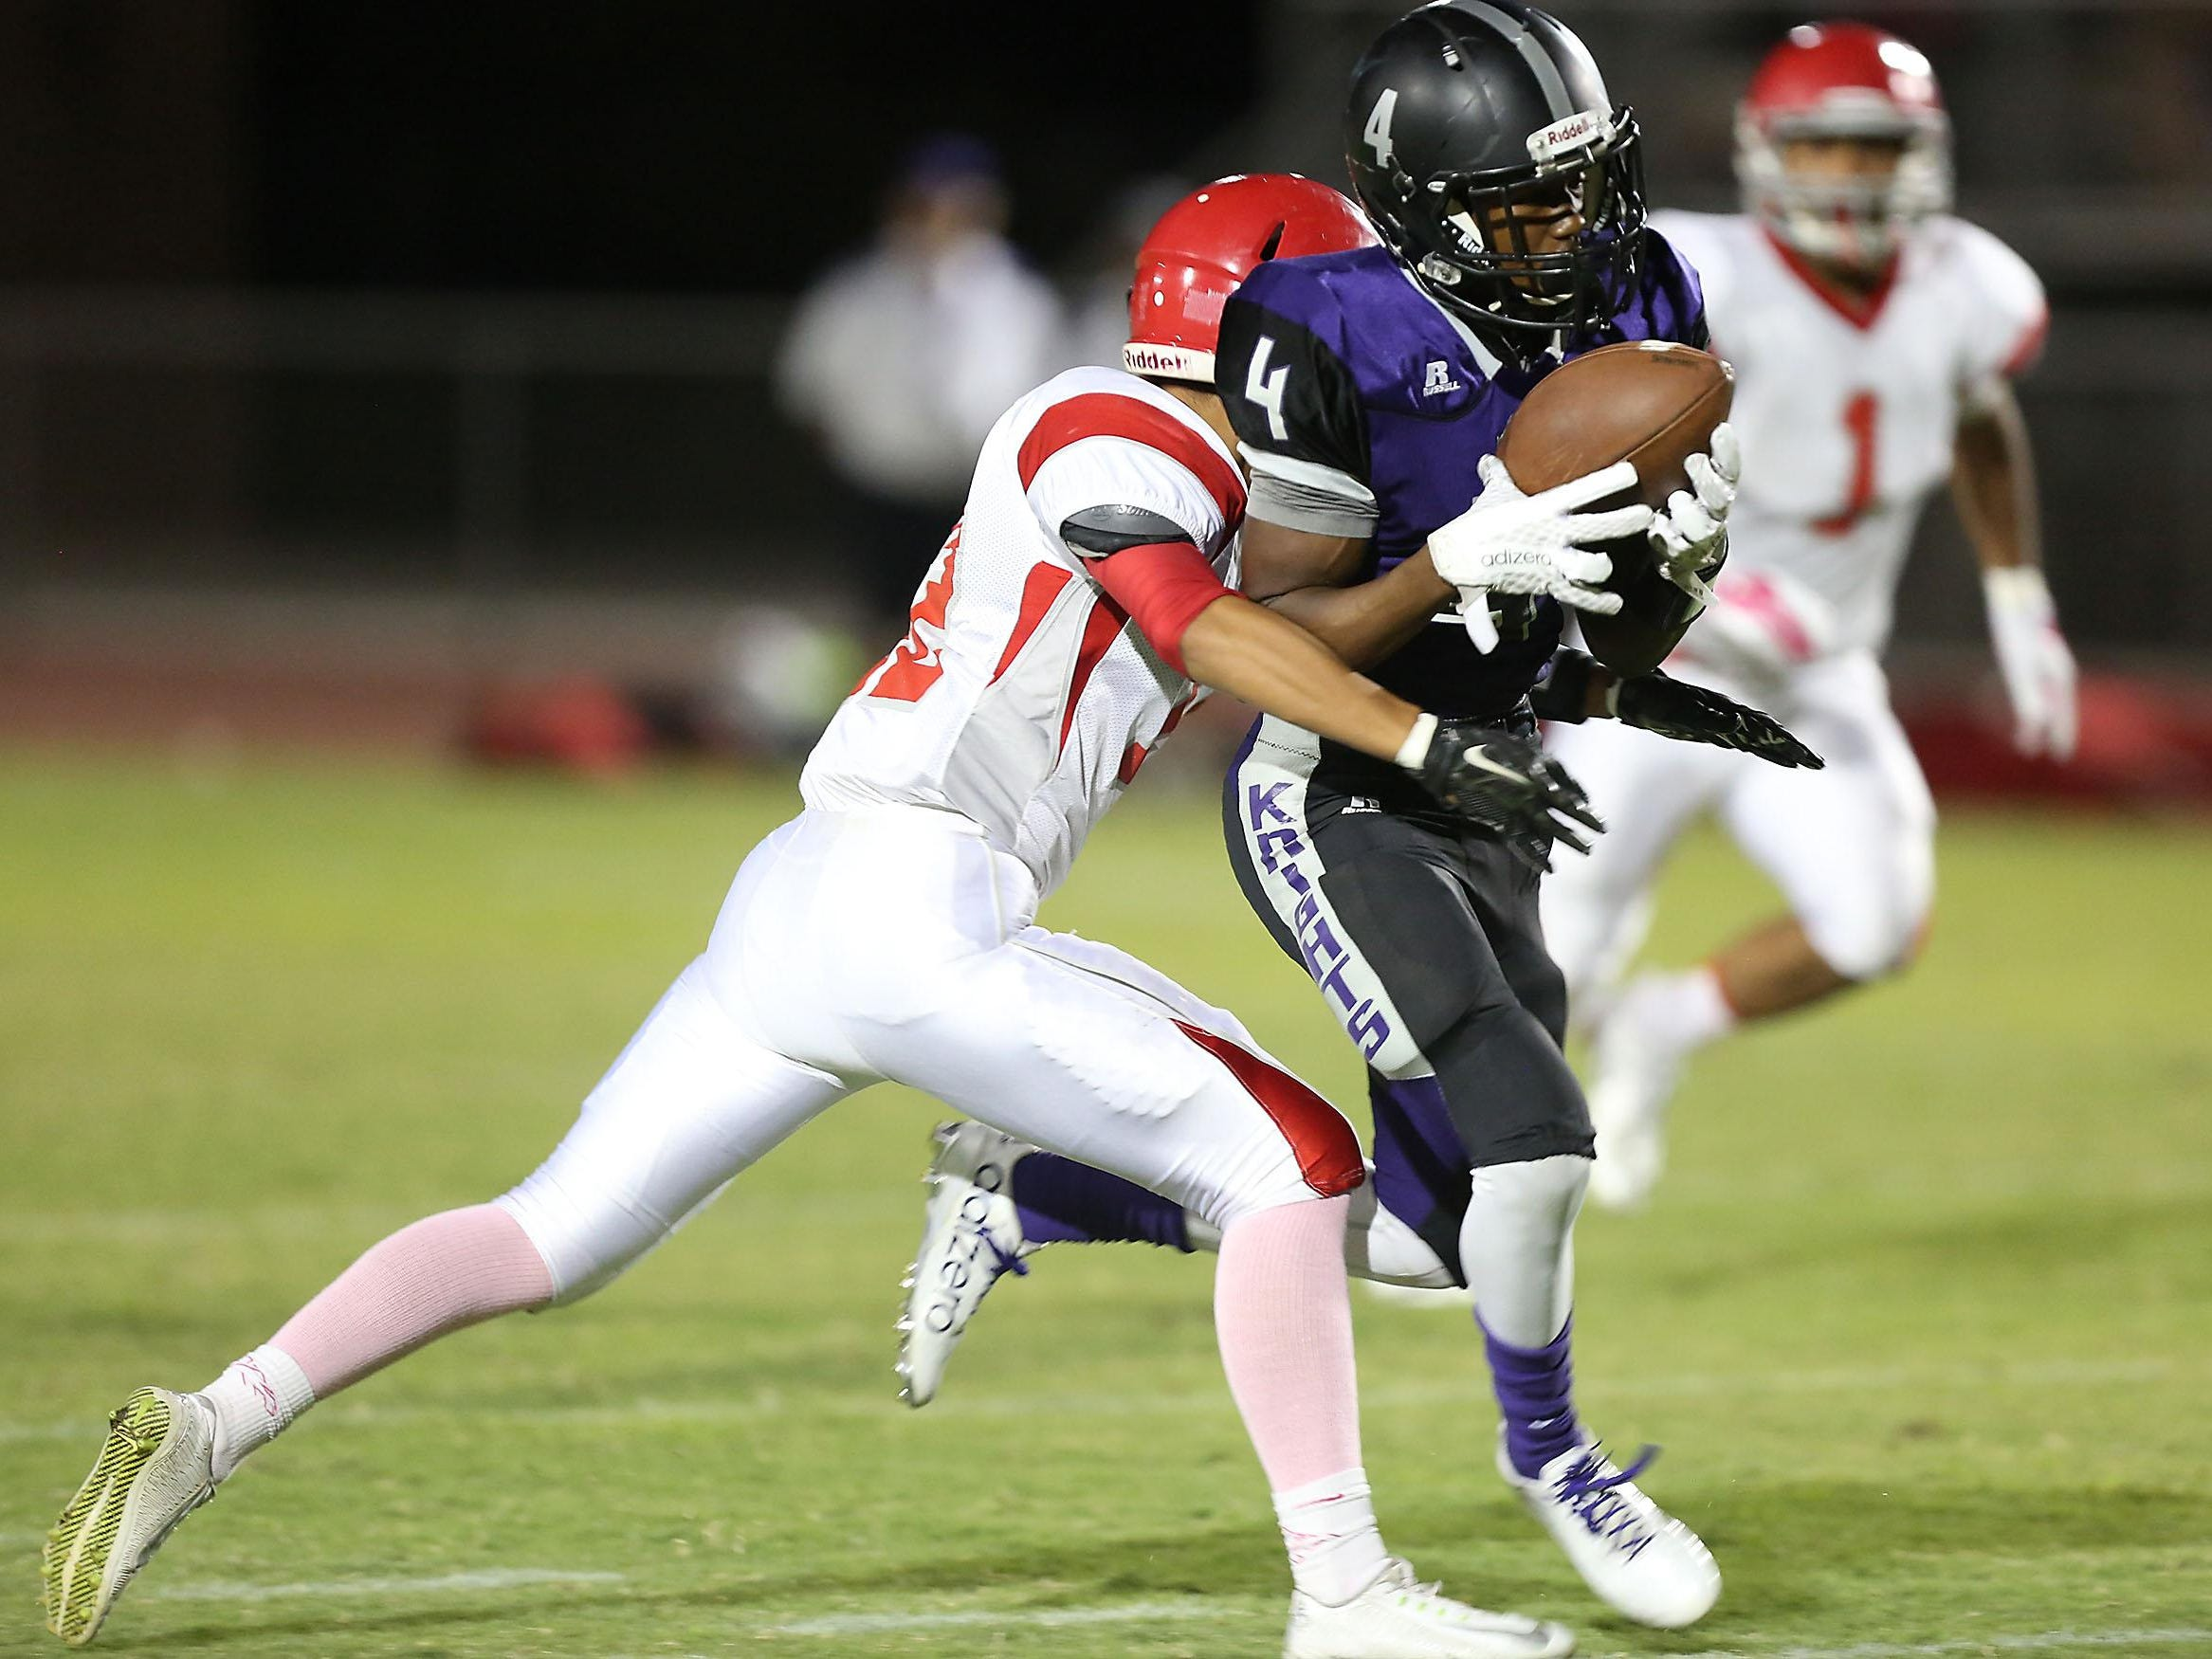 Shadow Hills reciever Derwin Johnson catches a pass for the first touchdown of the game against Desert Mirage, Friday, October 2, 2015.